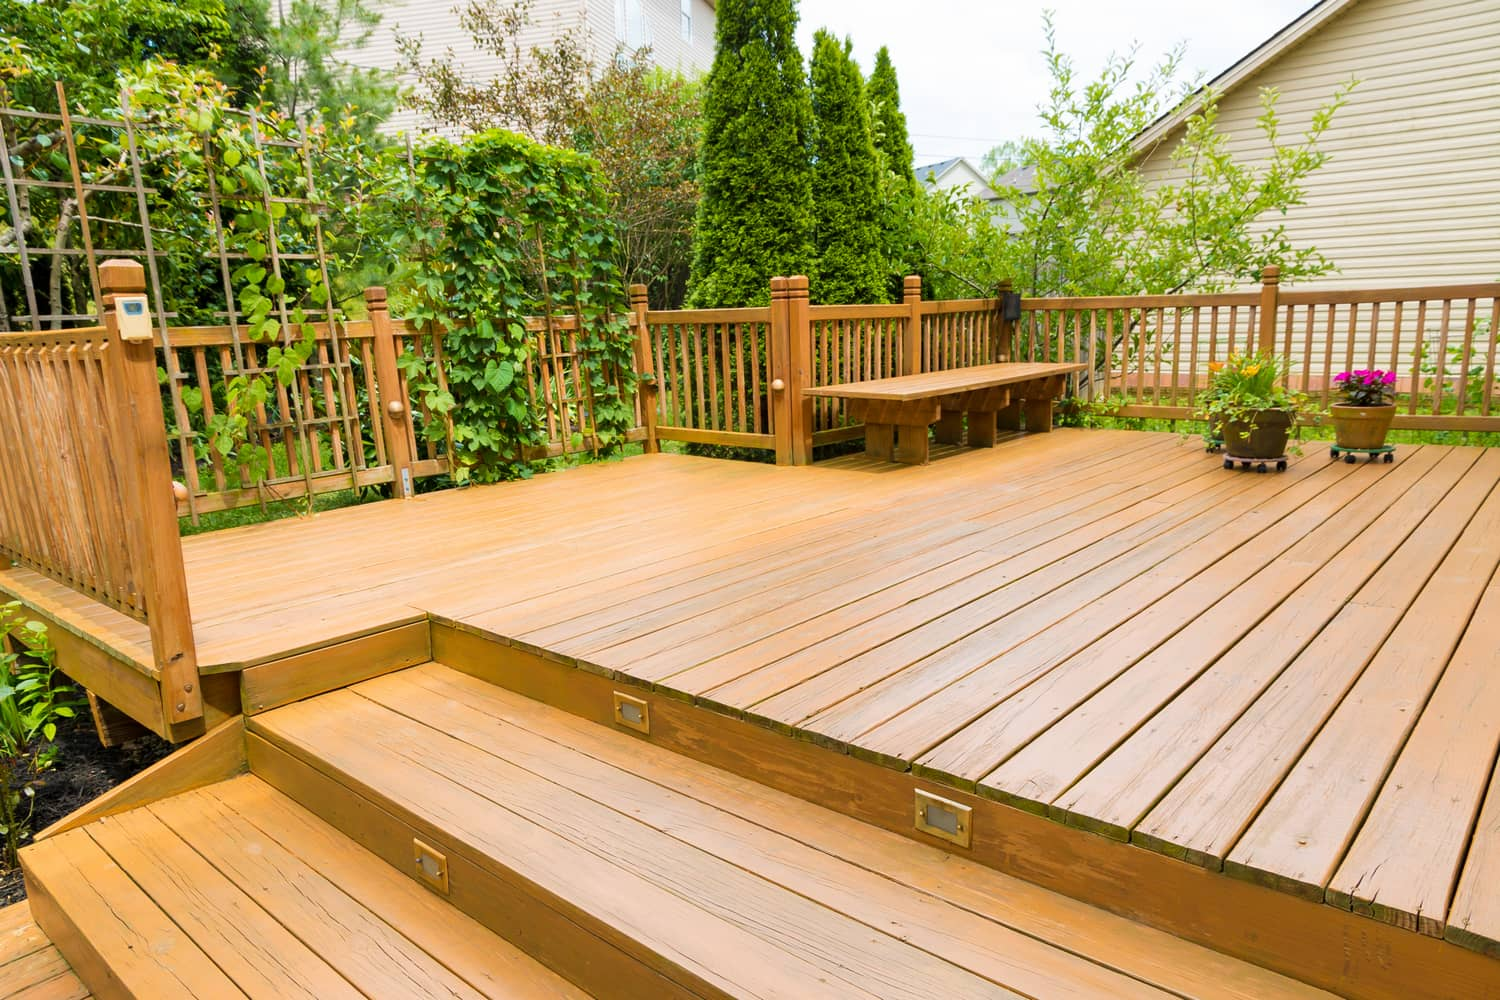 This picture is of a large wooden deck with a bench next to a garden.